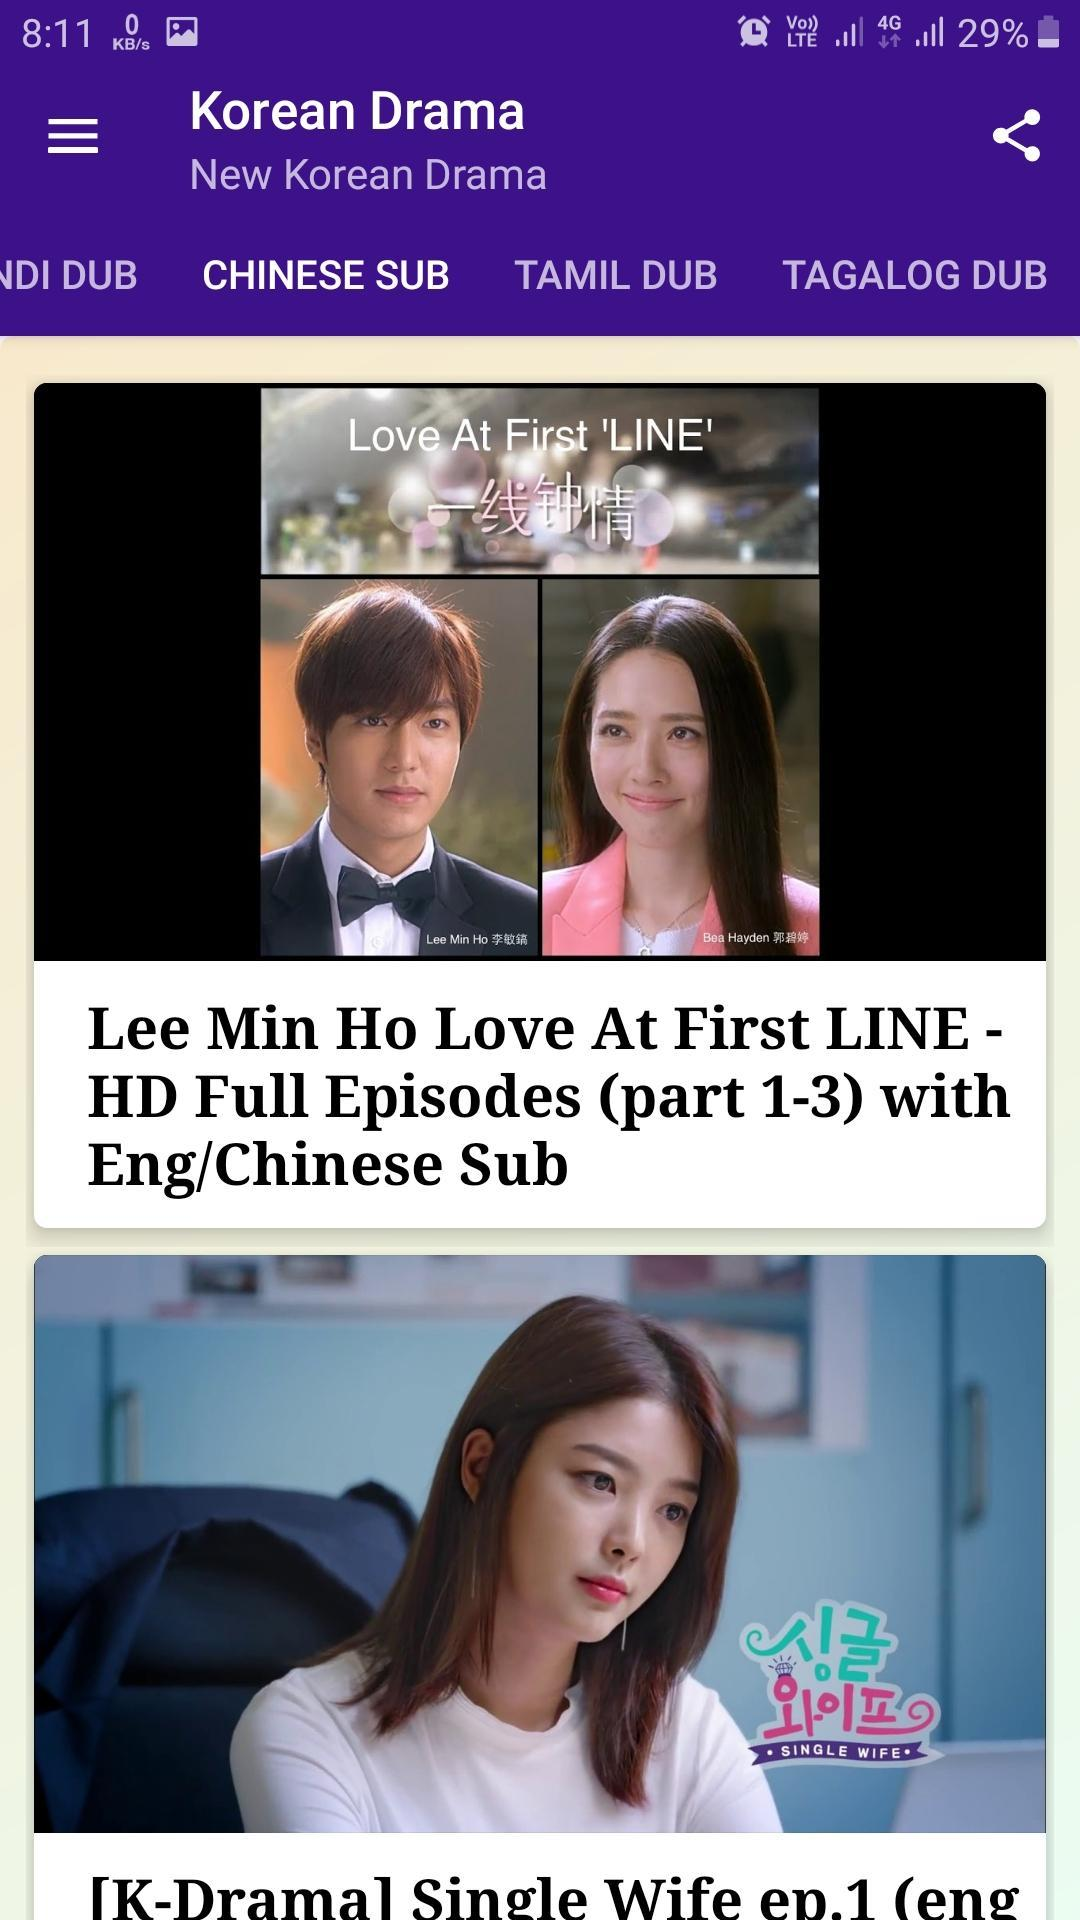 Korean Drama for Android - APK Download